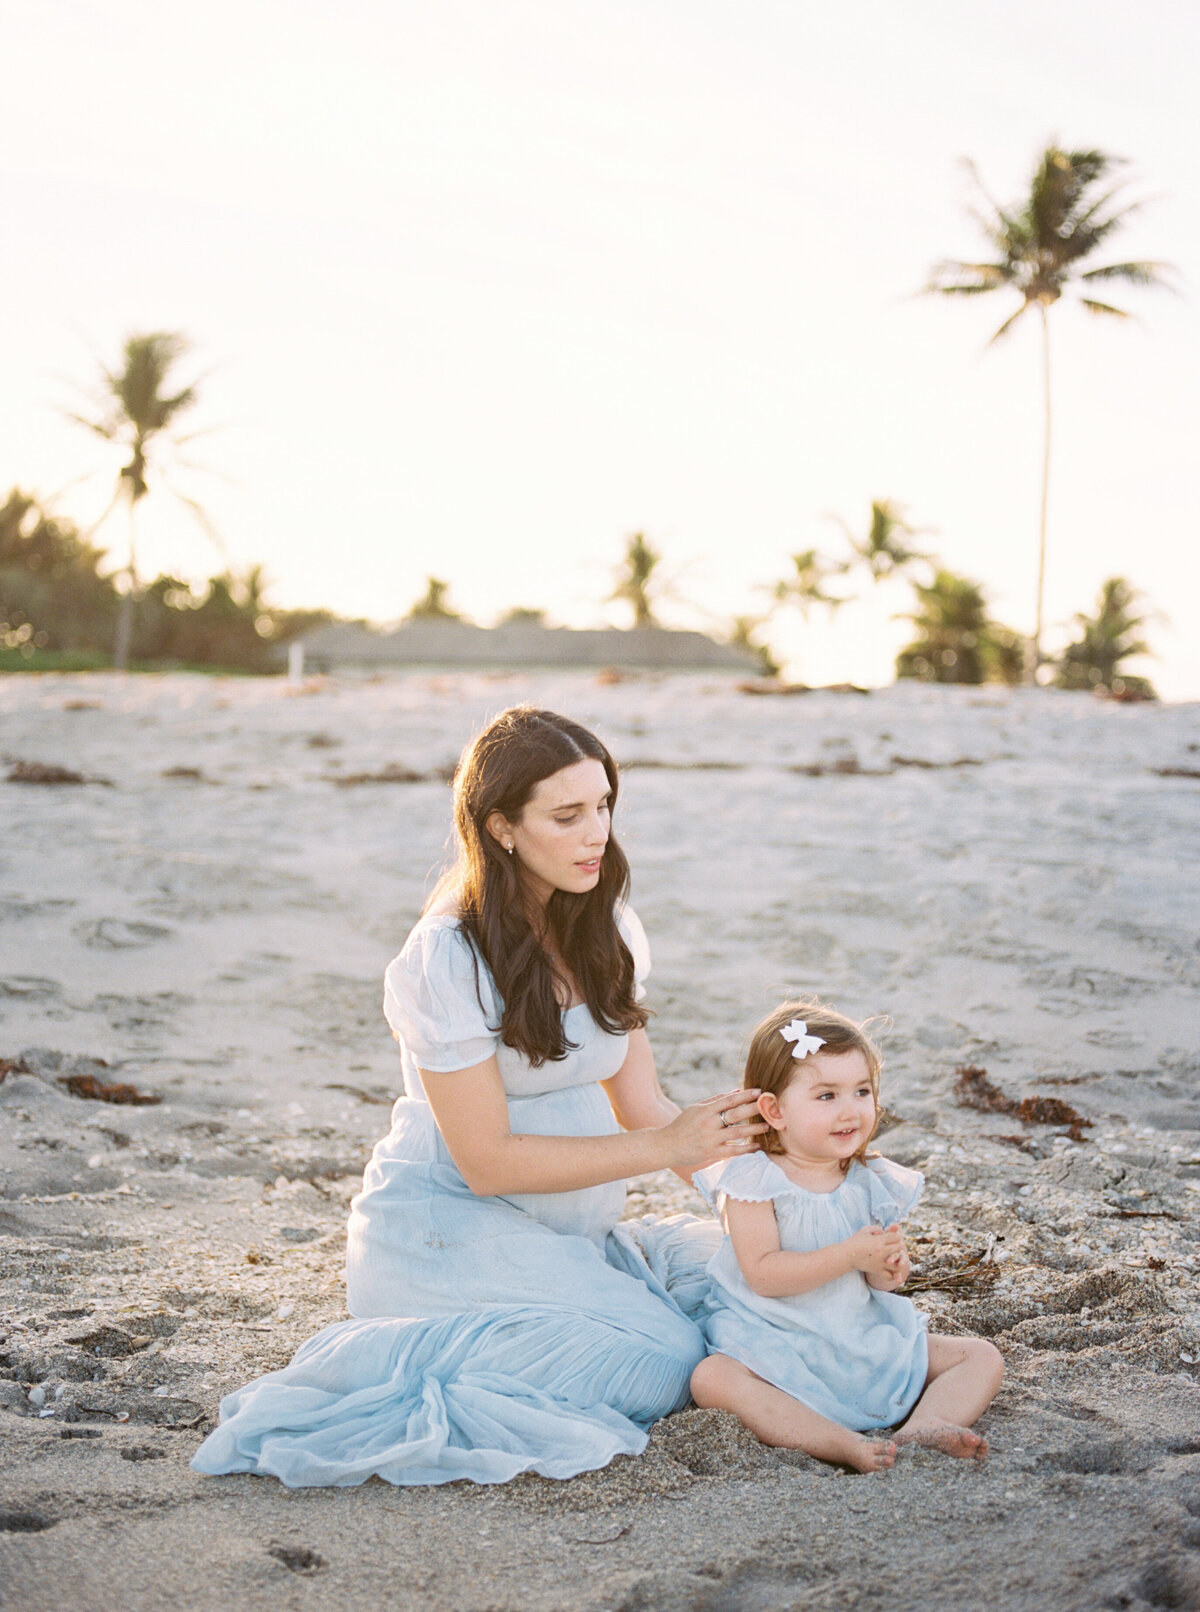 Peachy Sunset High Fashion Family Session Palm Beach Island Organic Timeless Artistic Genuine Photographer-27